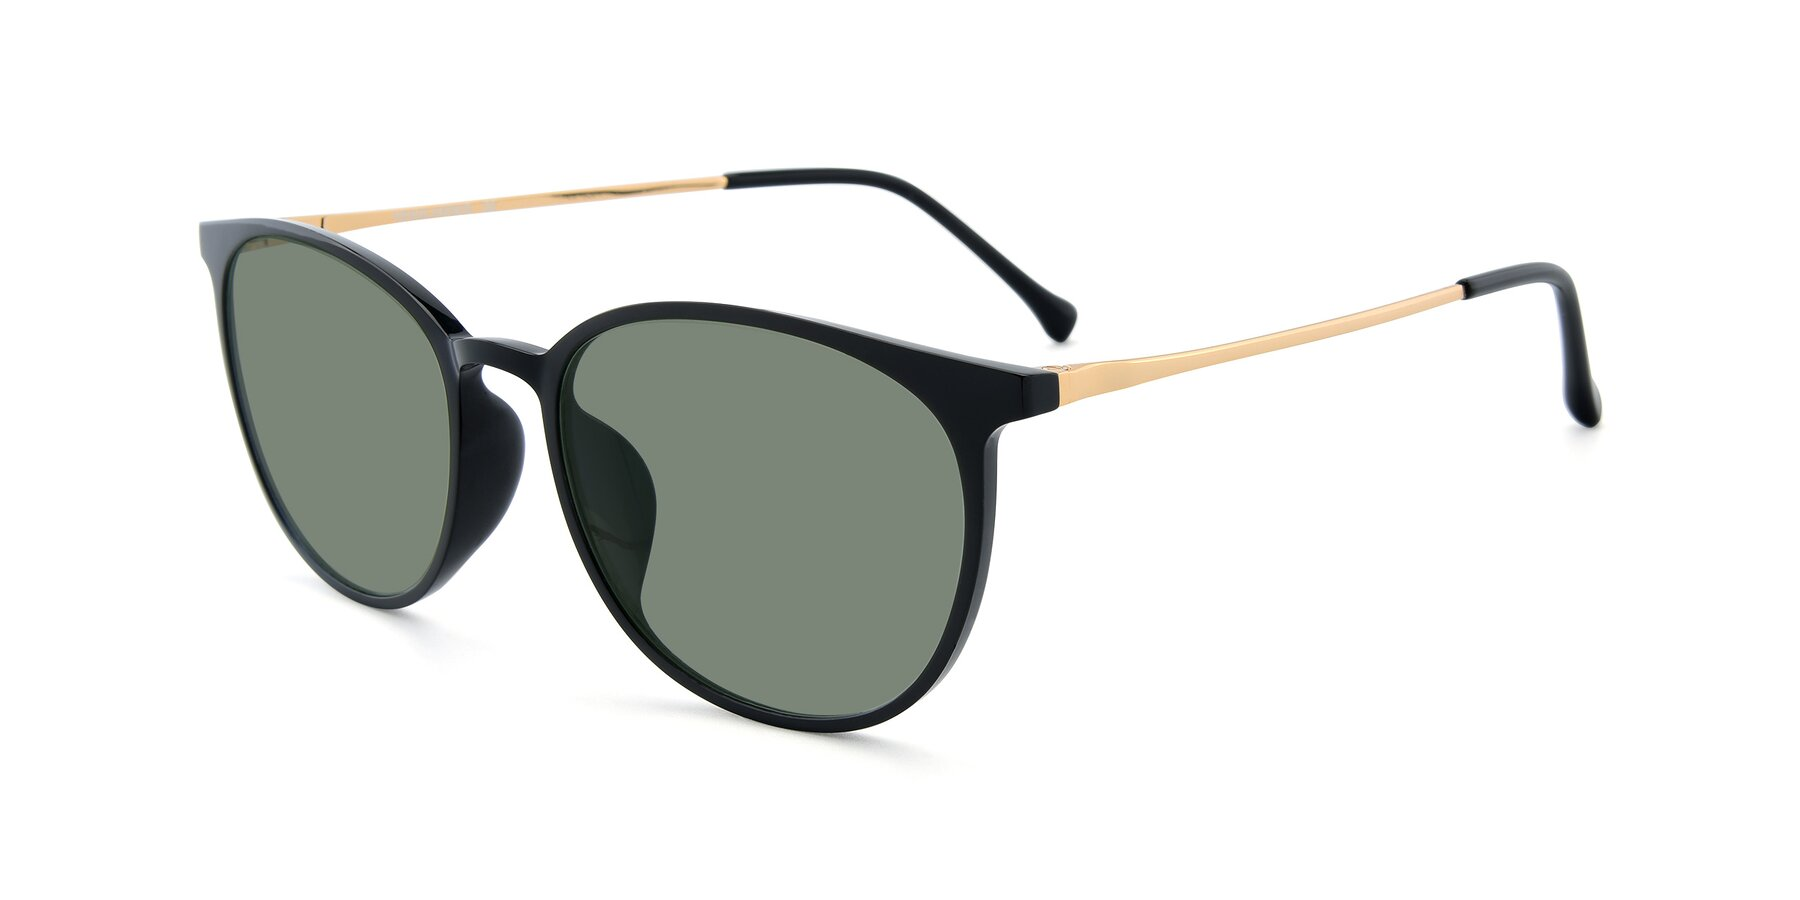 Angle of XC-6006 in Black-Gold with Medium Green Tinted Lenses